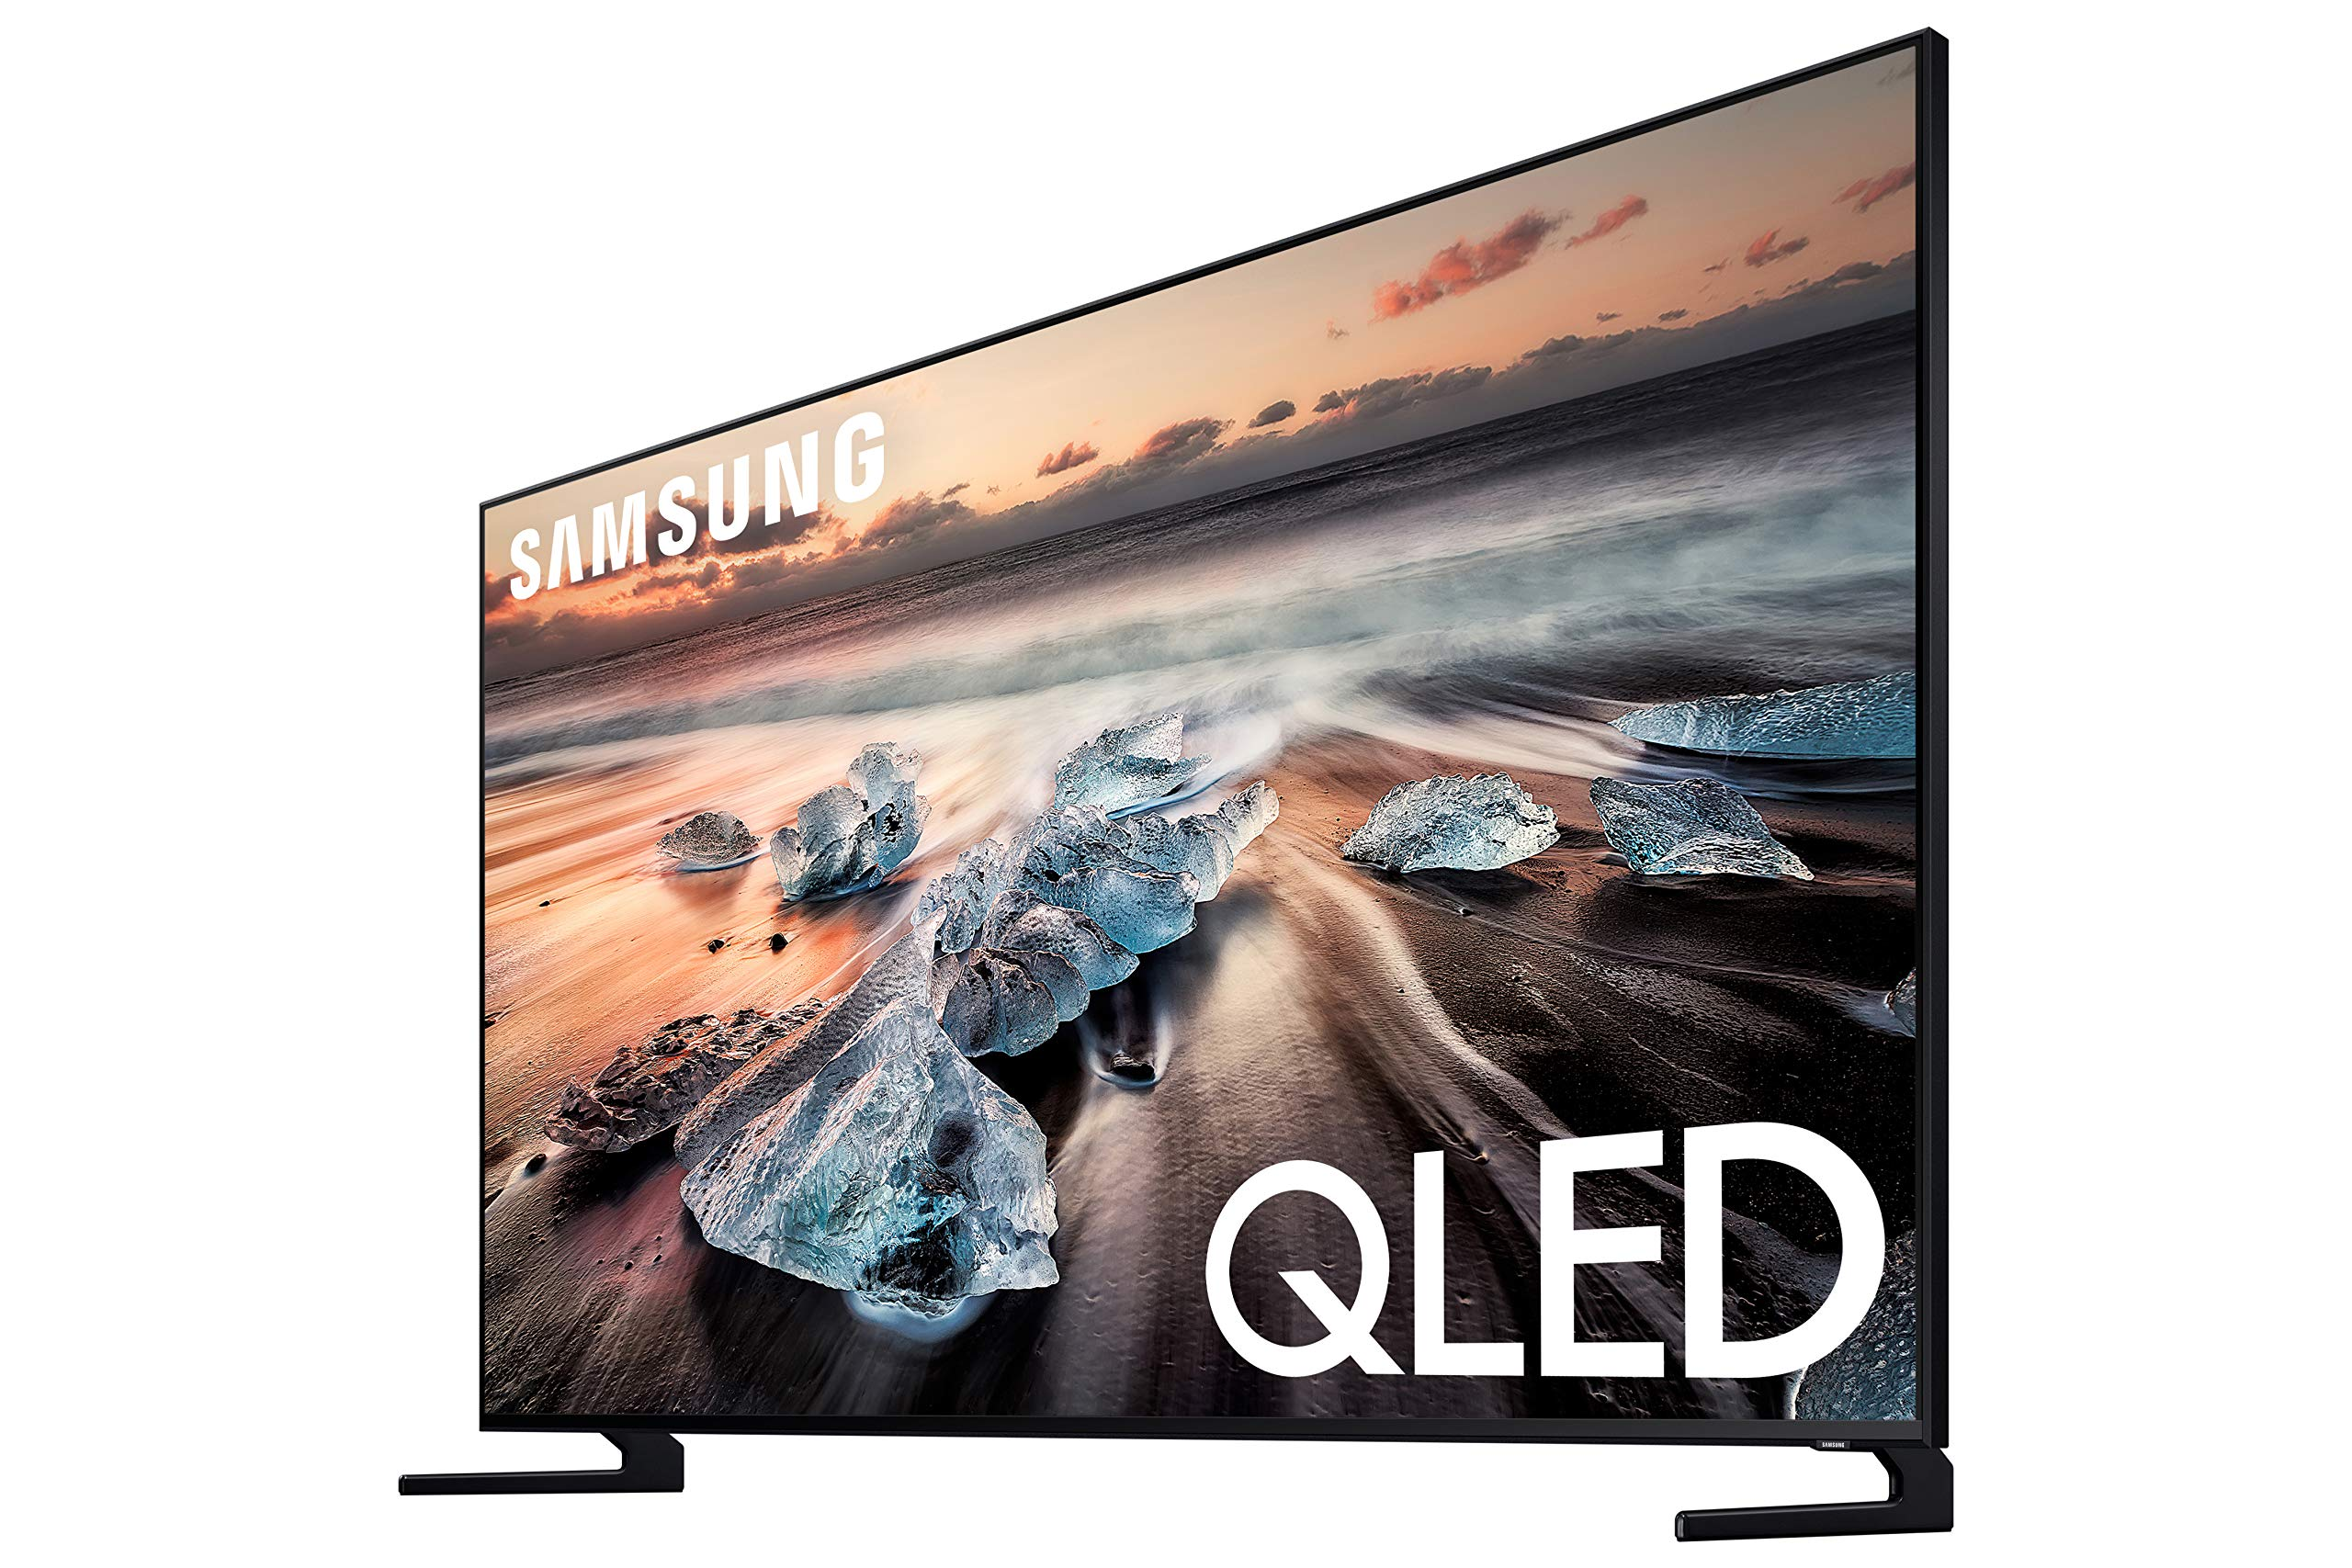 Samsung QN75Q900RBFXZA Flat 75-Inch QLED 8K Q900 Series Ultra HD Smart TV with HDR and Alexa Compatibility (2019 Model)